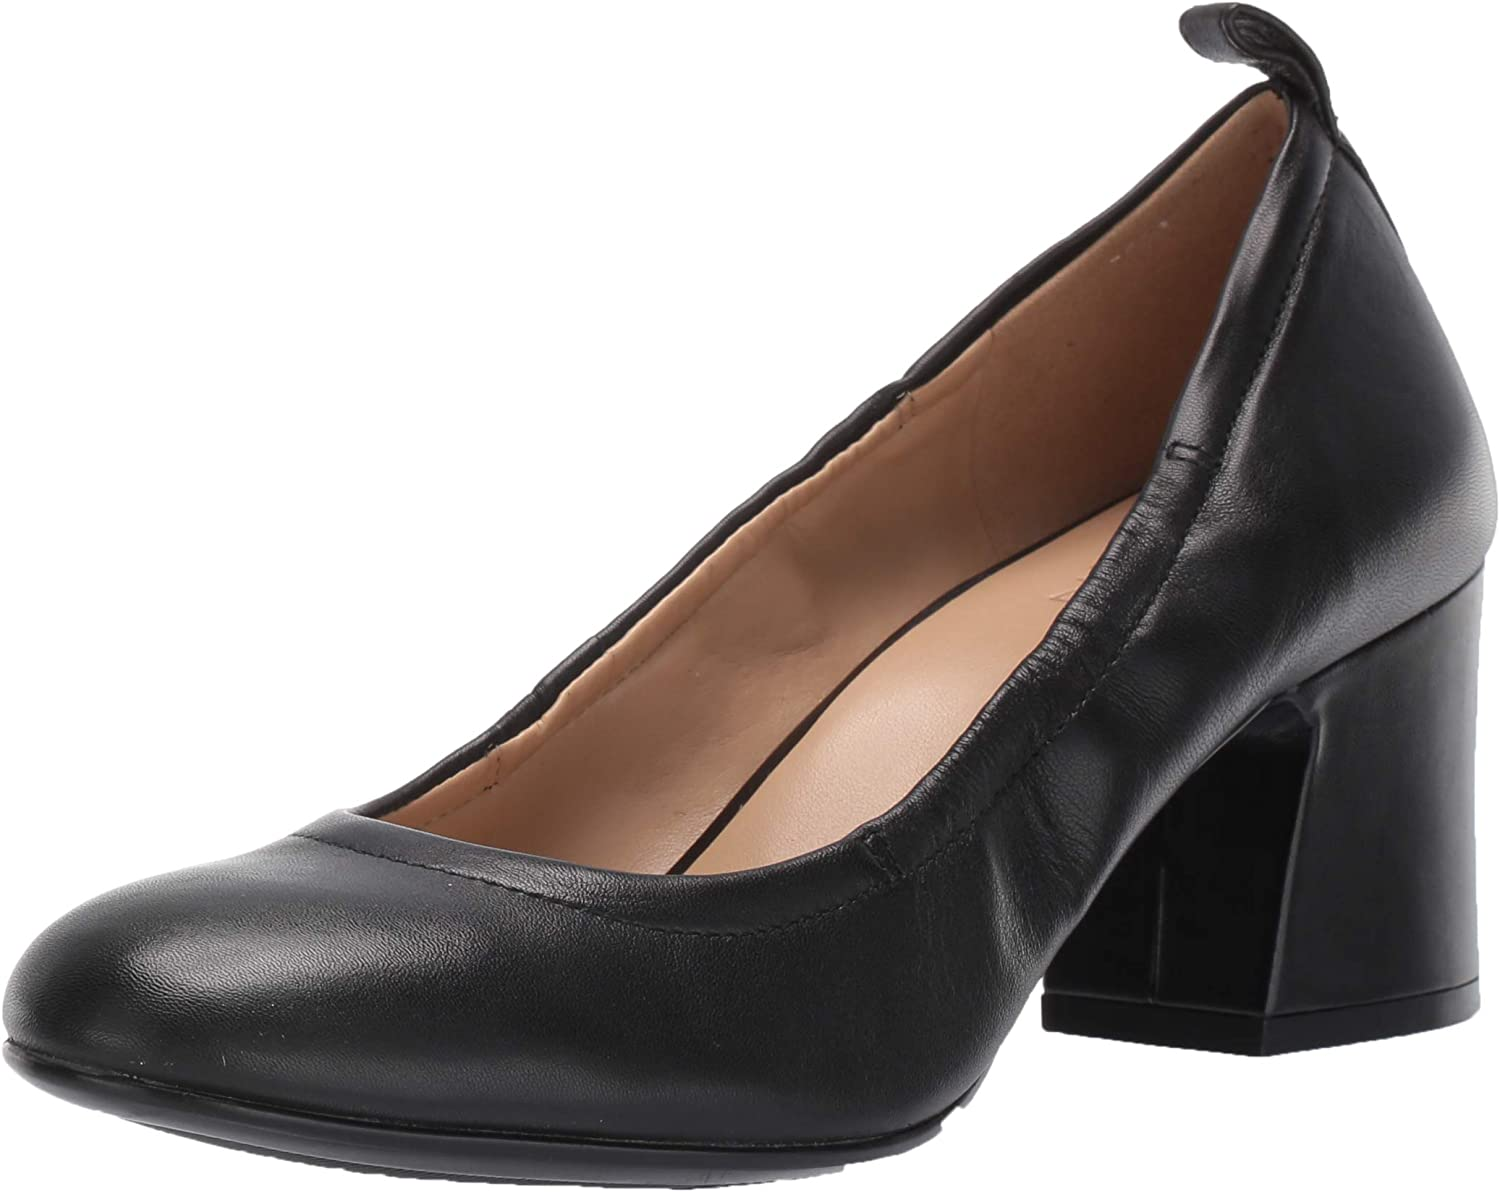 Naturalizer Women's Dalee Pump